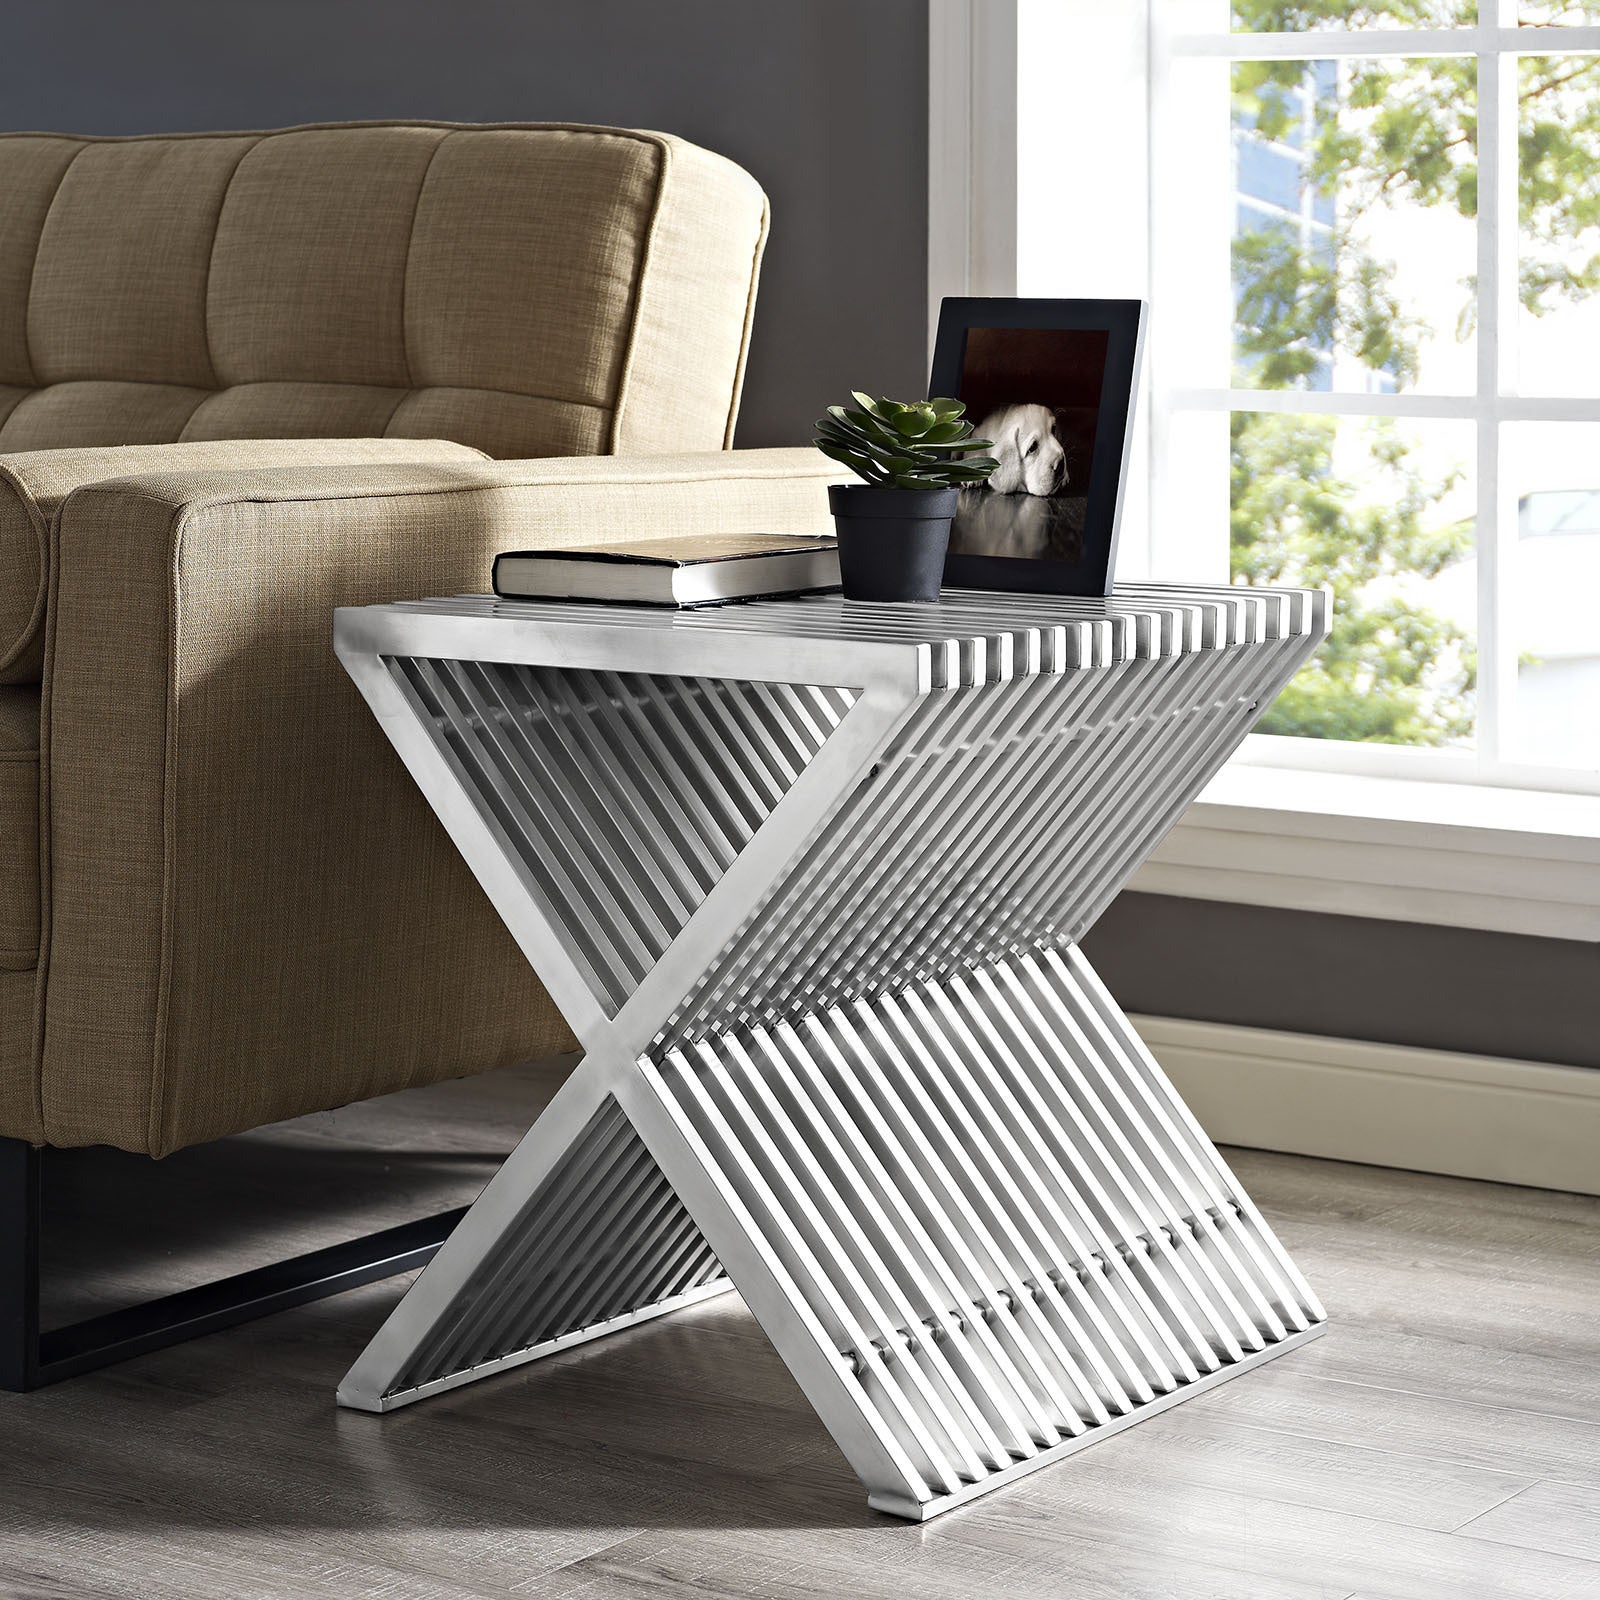 Shop Press Stainless Steel Side Table   Free Shipping Today   Overstock.com    11206968